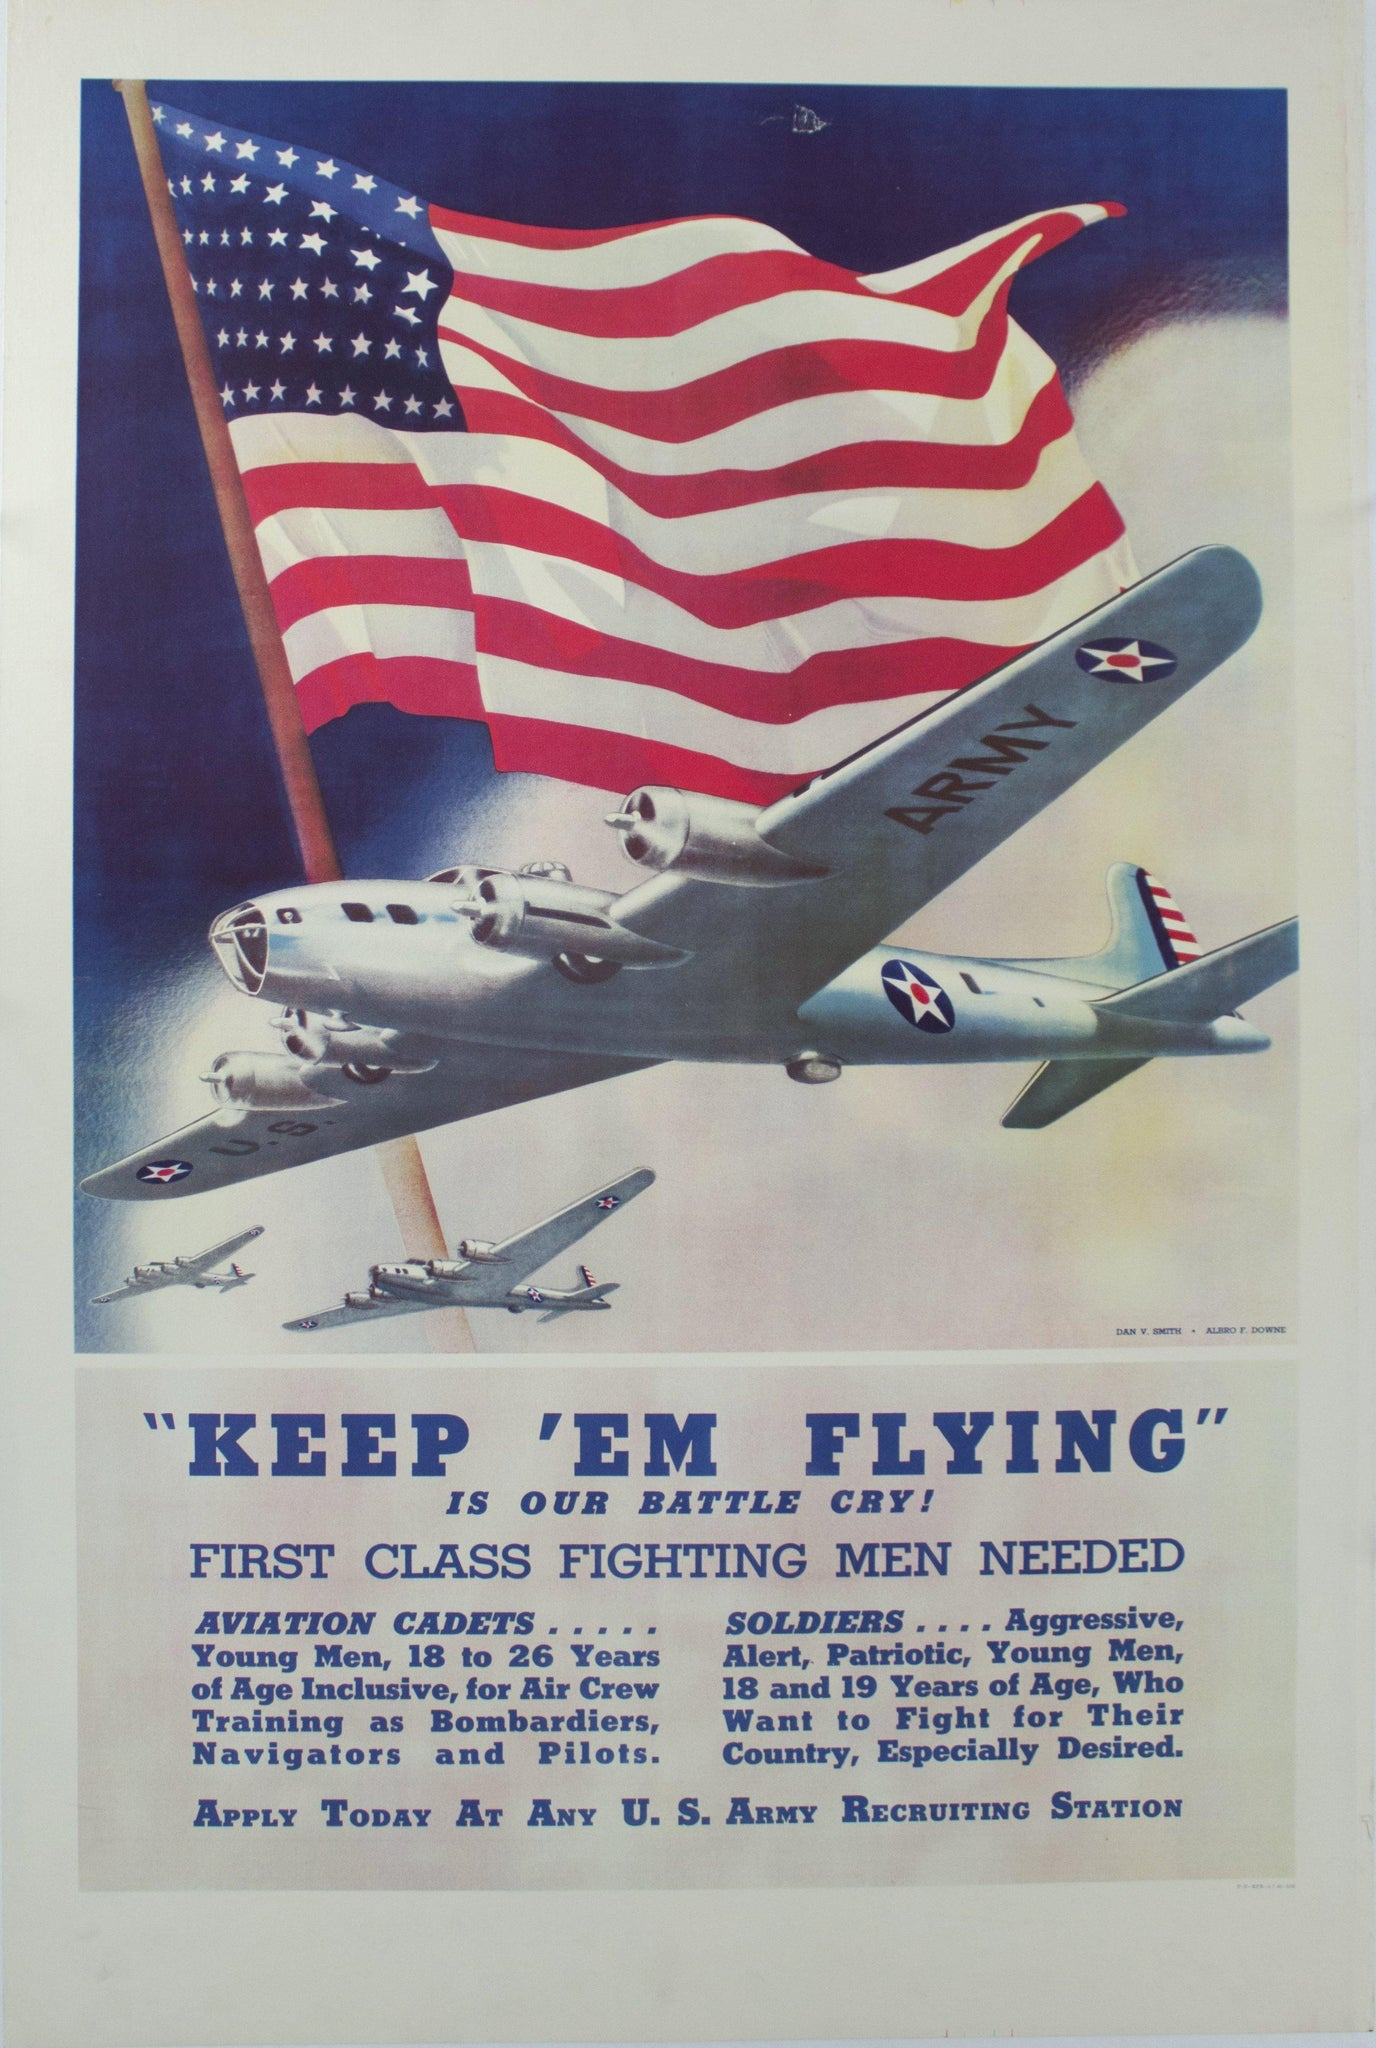 1942 Keep 'em Flying is our Battle Cry